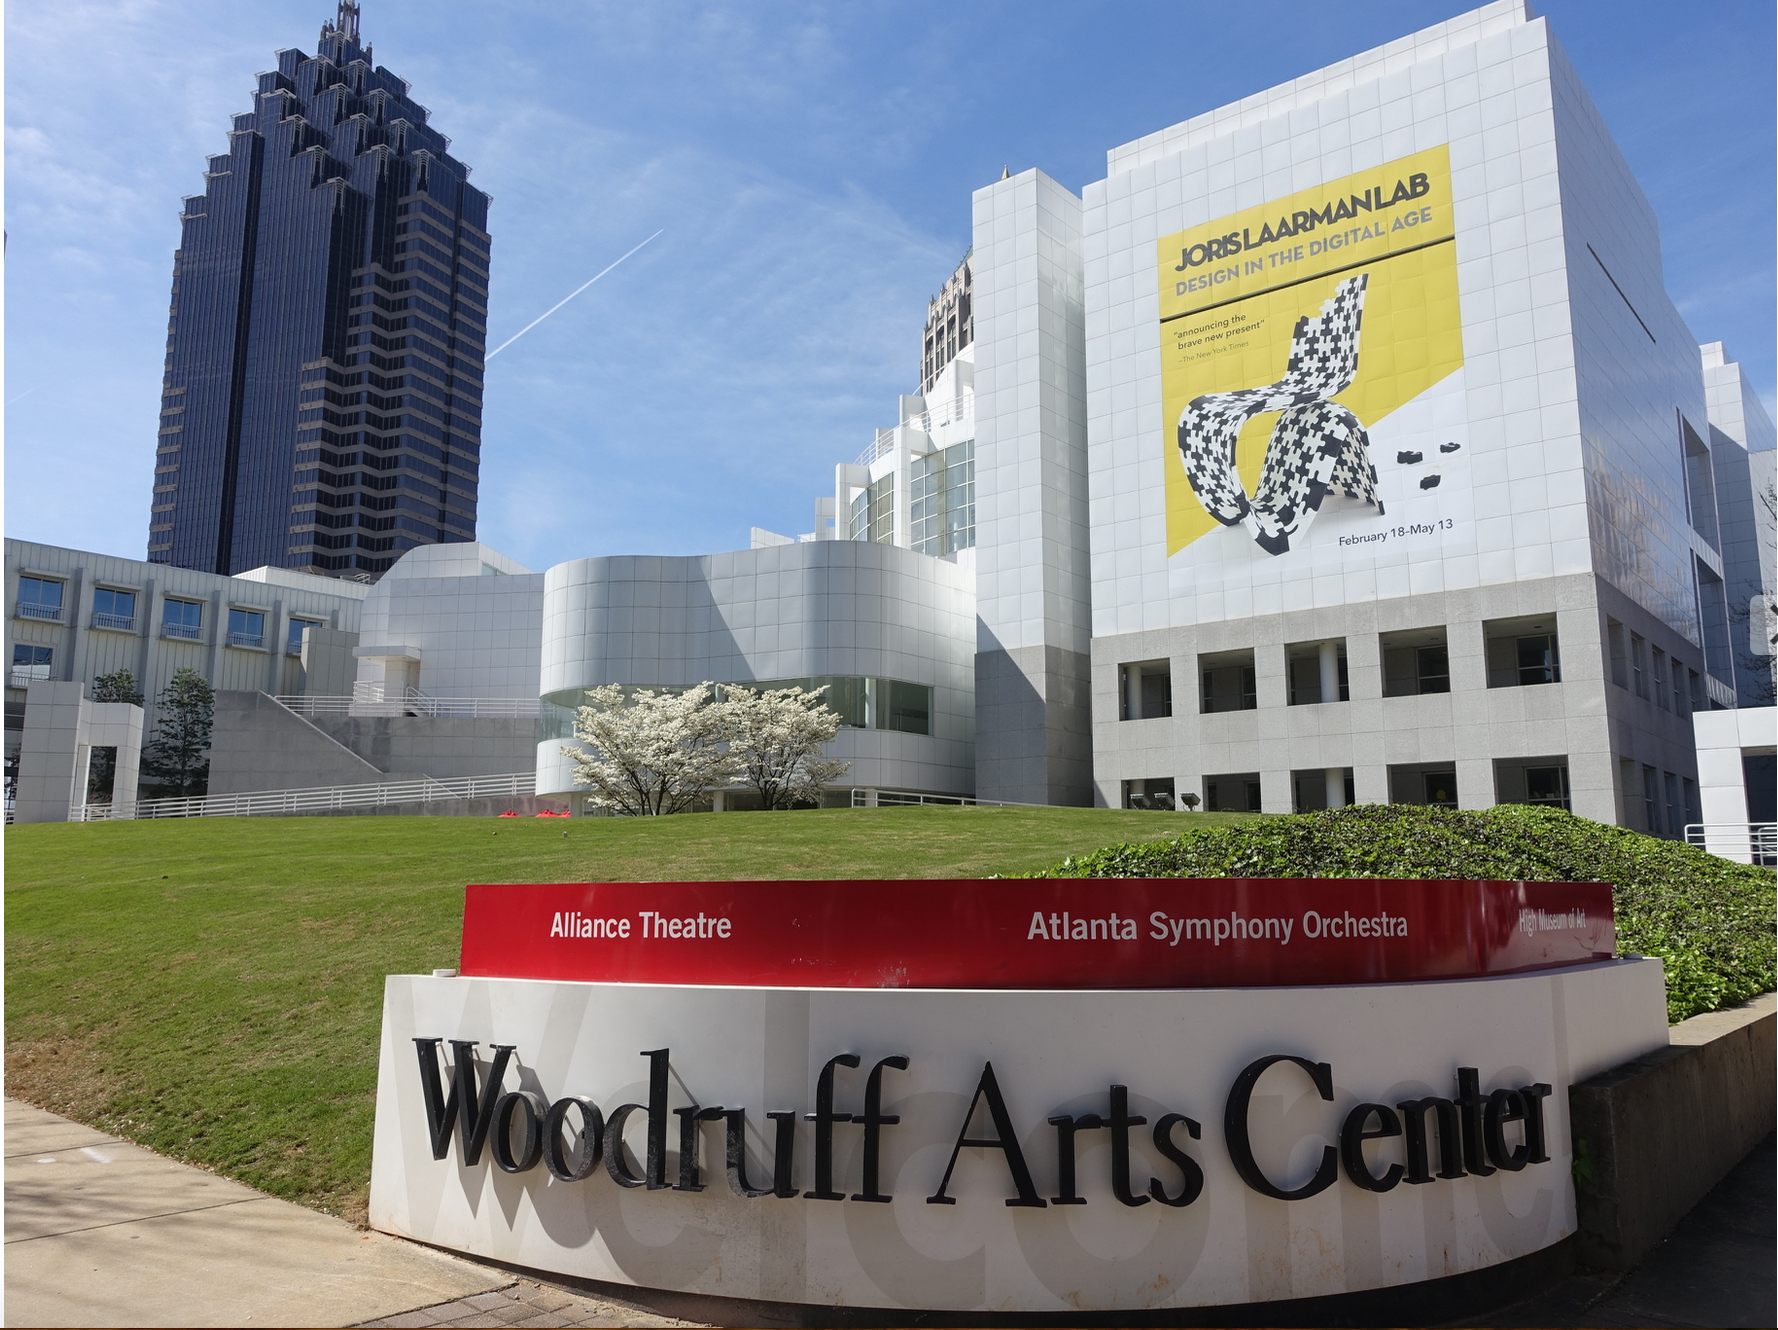 Atlanta's Woodruff Arts Center, combines theatre, concert hall and art museum.